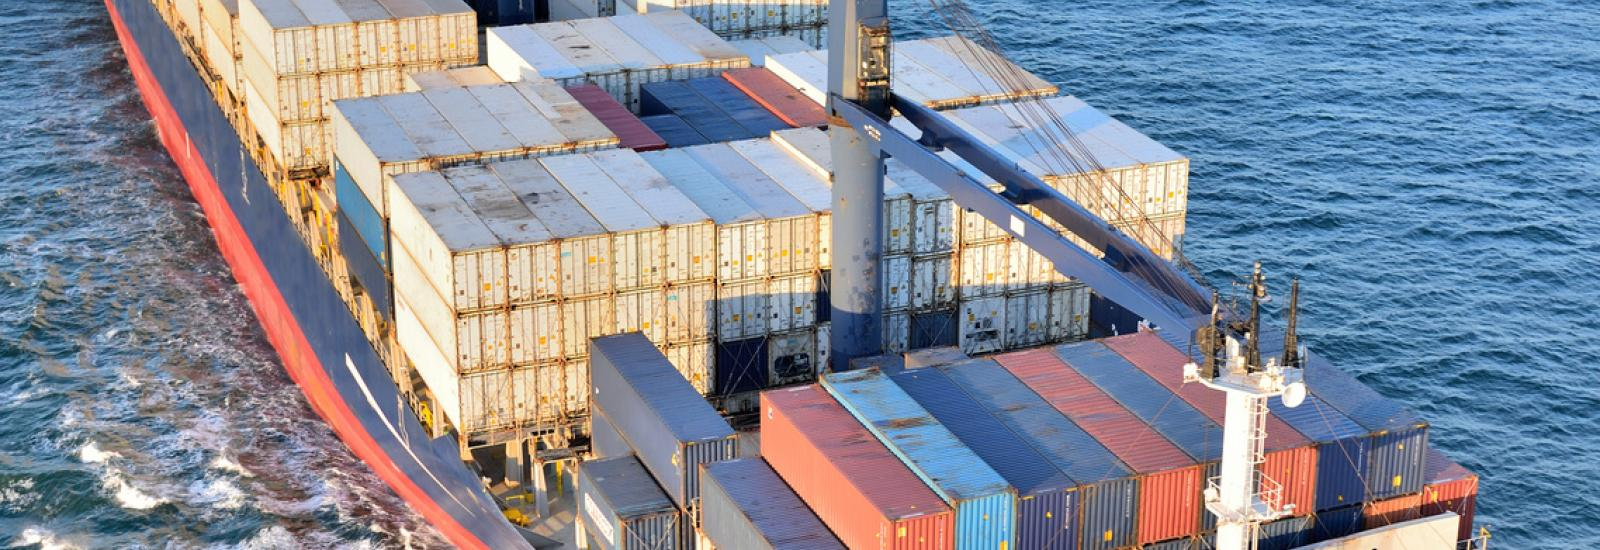 Transports, bateaux, containers, commerce, océans, mers, transports maritimes, marine